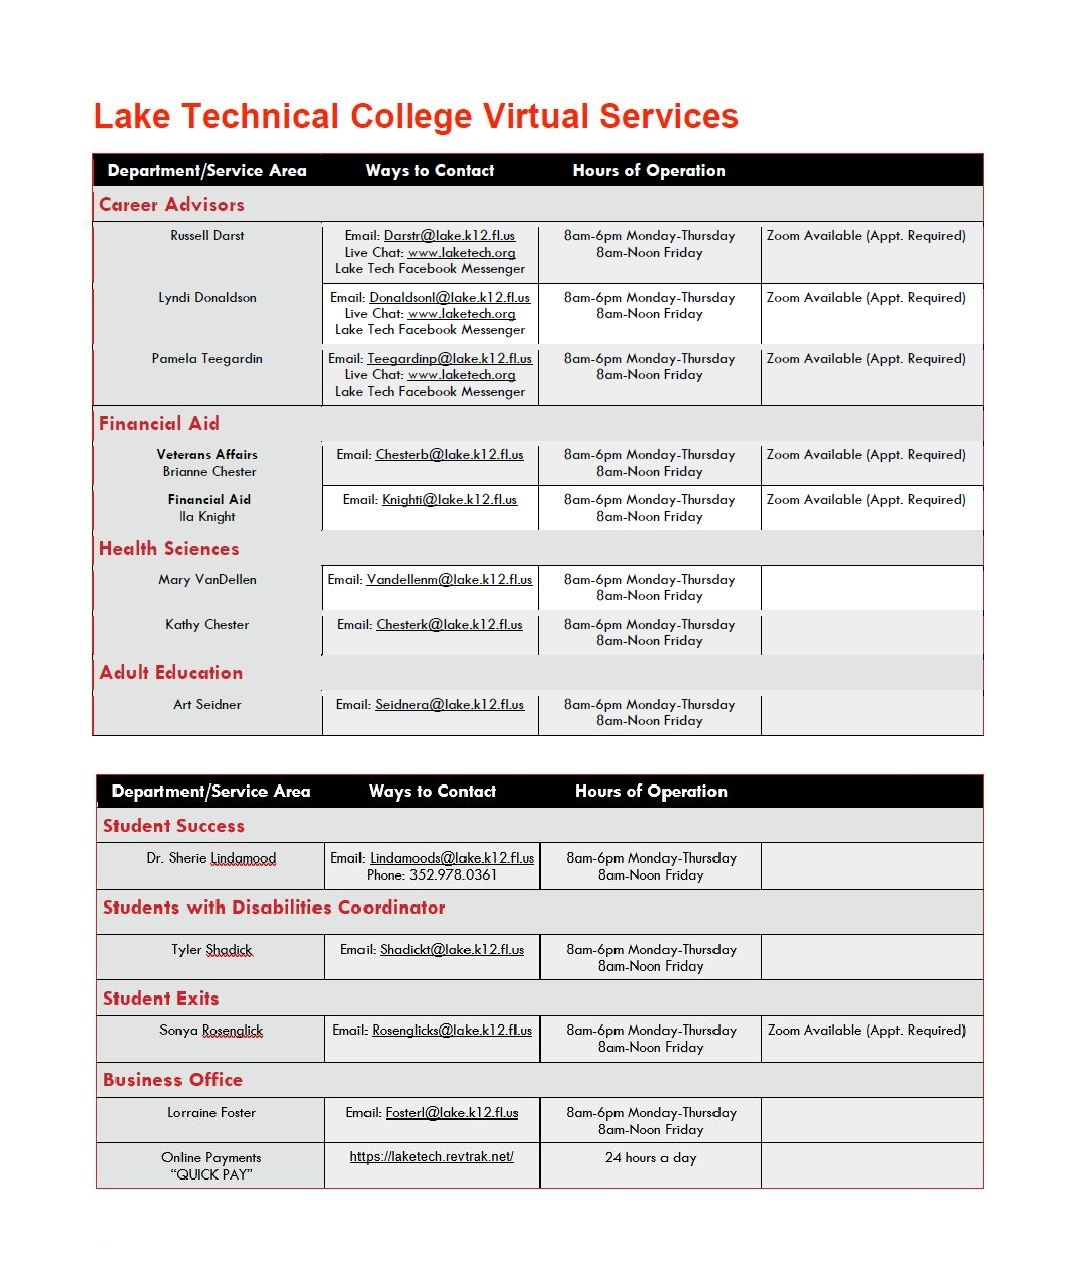 virtual services Virtual College Services Available NOW